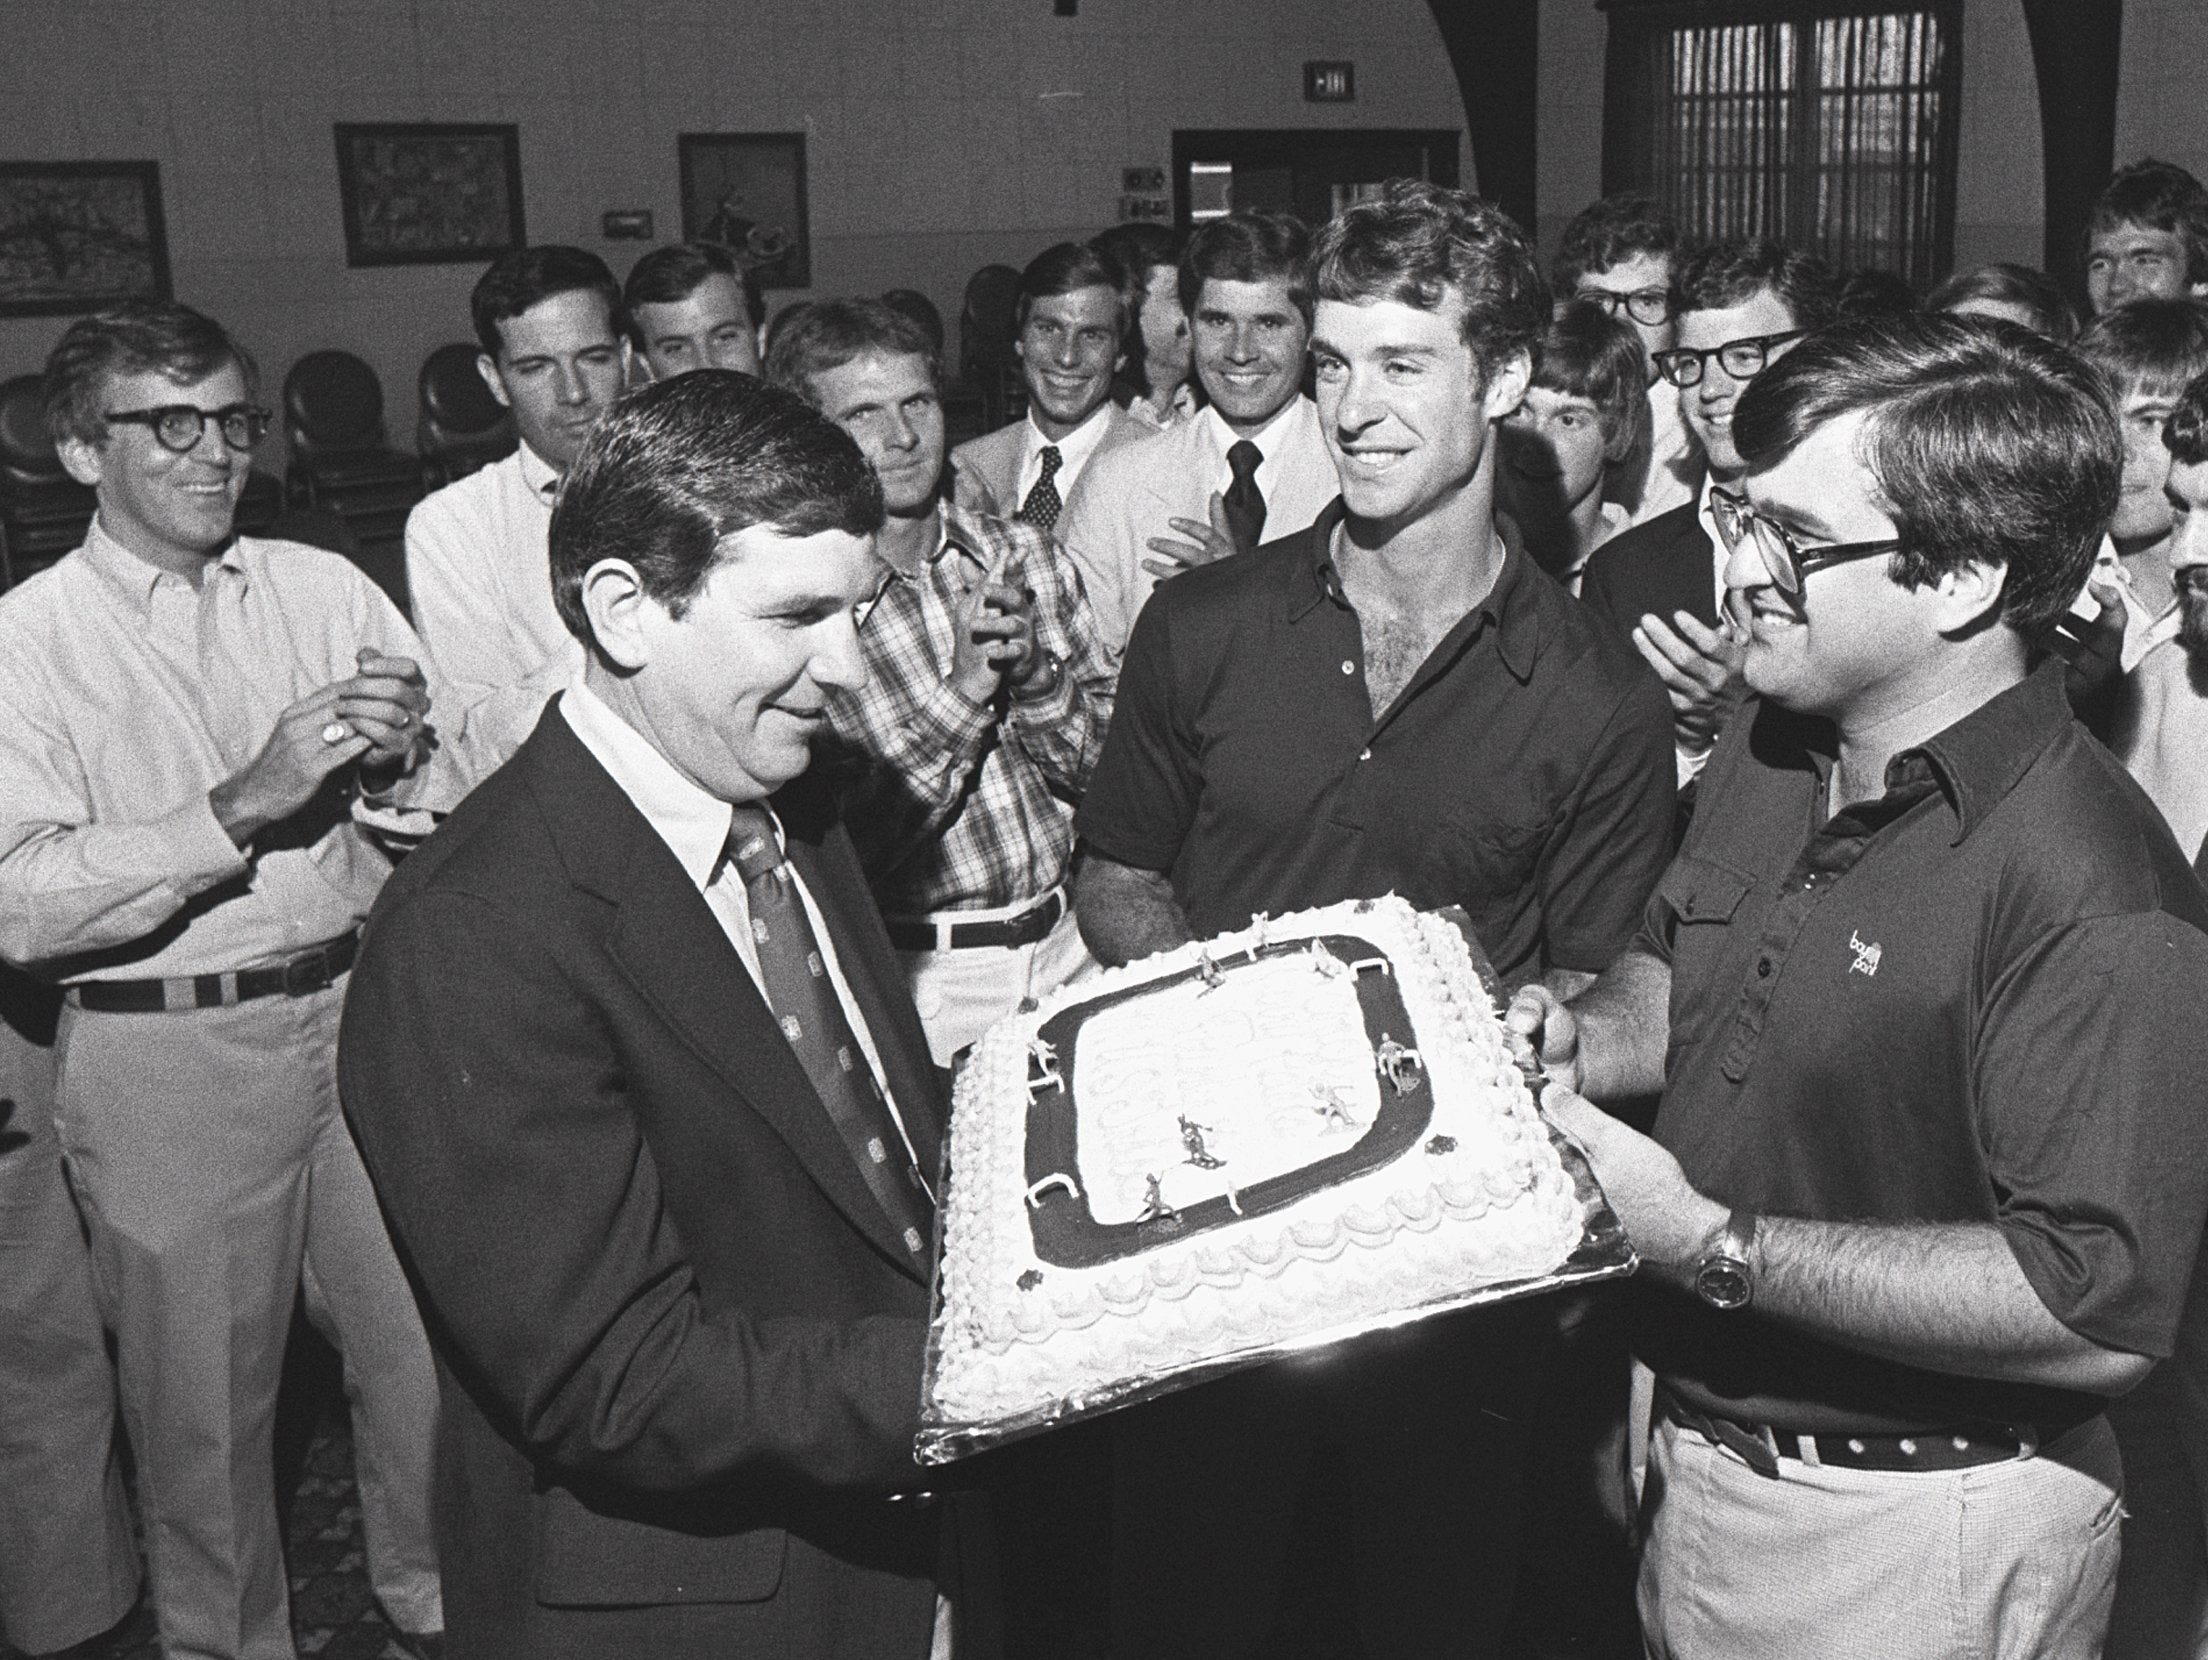 Present and former members of the Memphis University School's track program held a surprise party and steak dinner on 21 July 1978 for MUS Coach Jerry Peters, who announced his retirement in May after 17 years as the school's track coach. He will remain at MUS as head basketball coach.